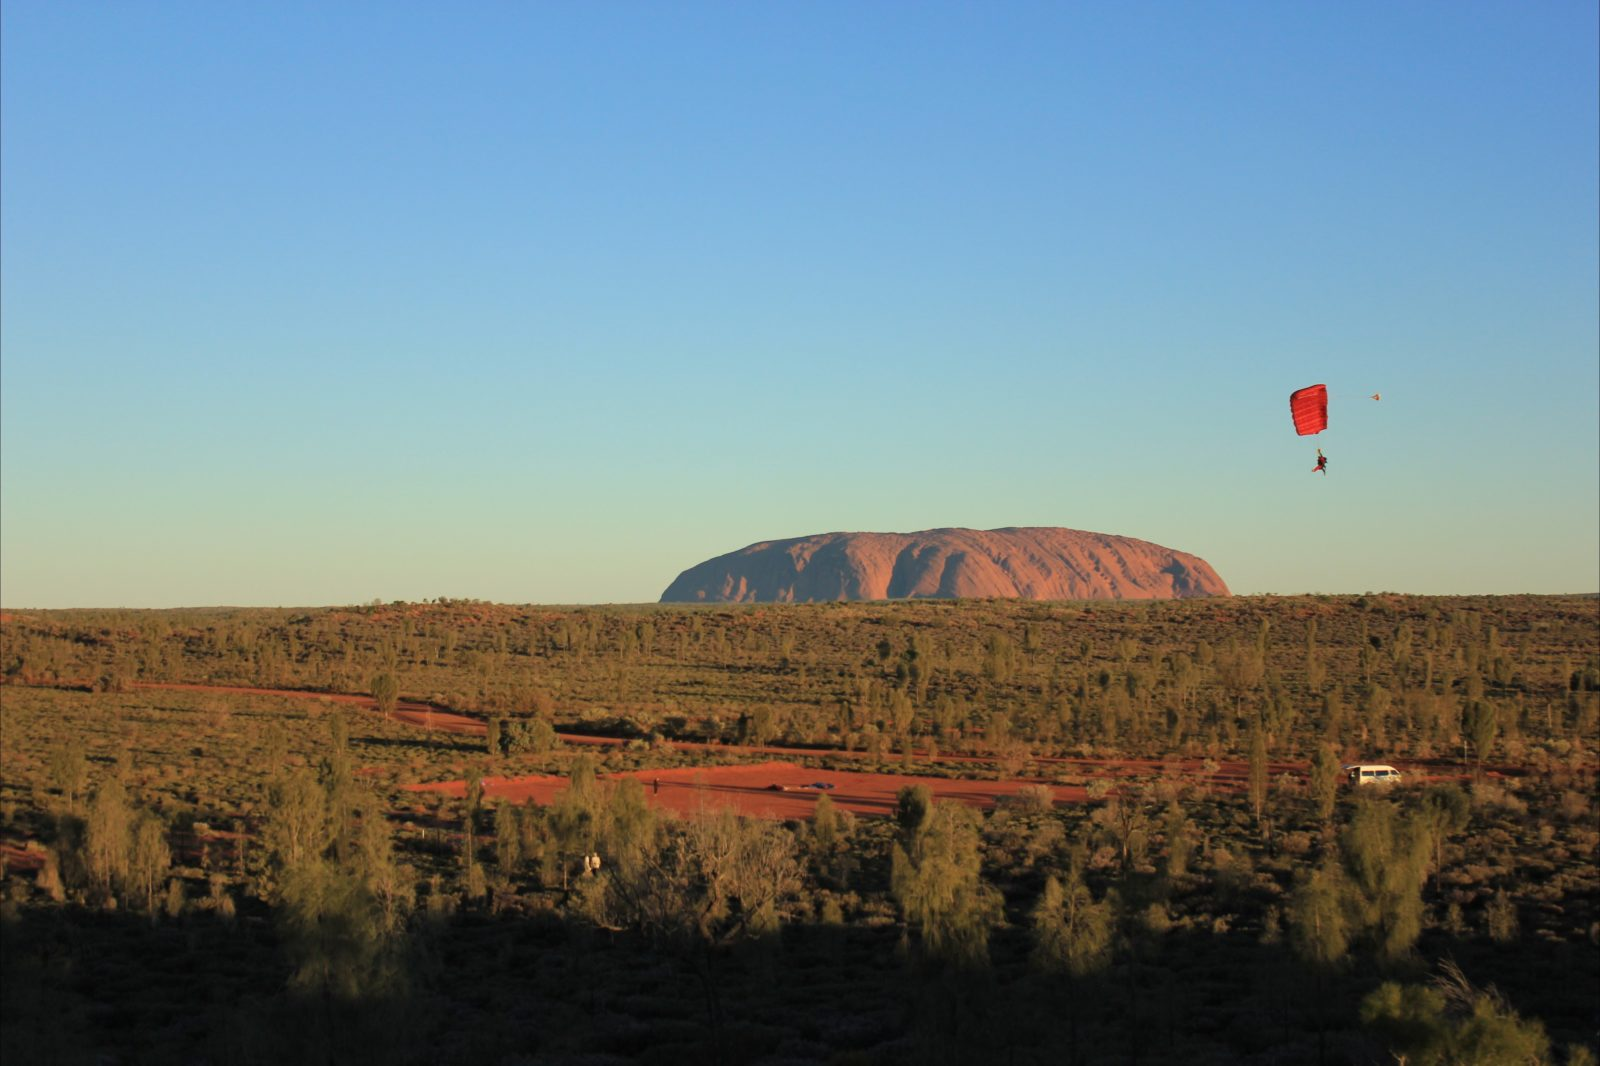 Skydive Uluru Ayers Rock parachute landing on Red Centre Drop Zone with Uluru in the background.